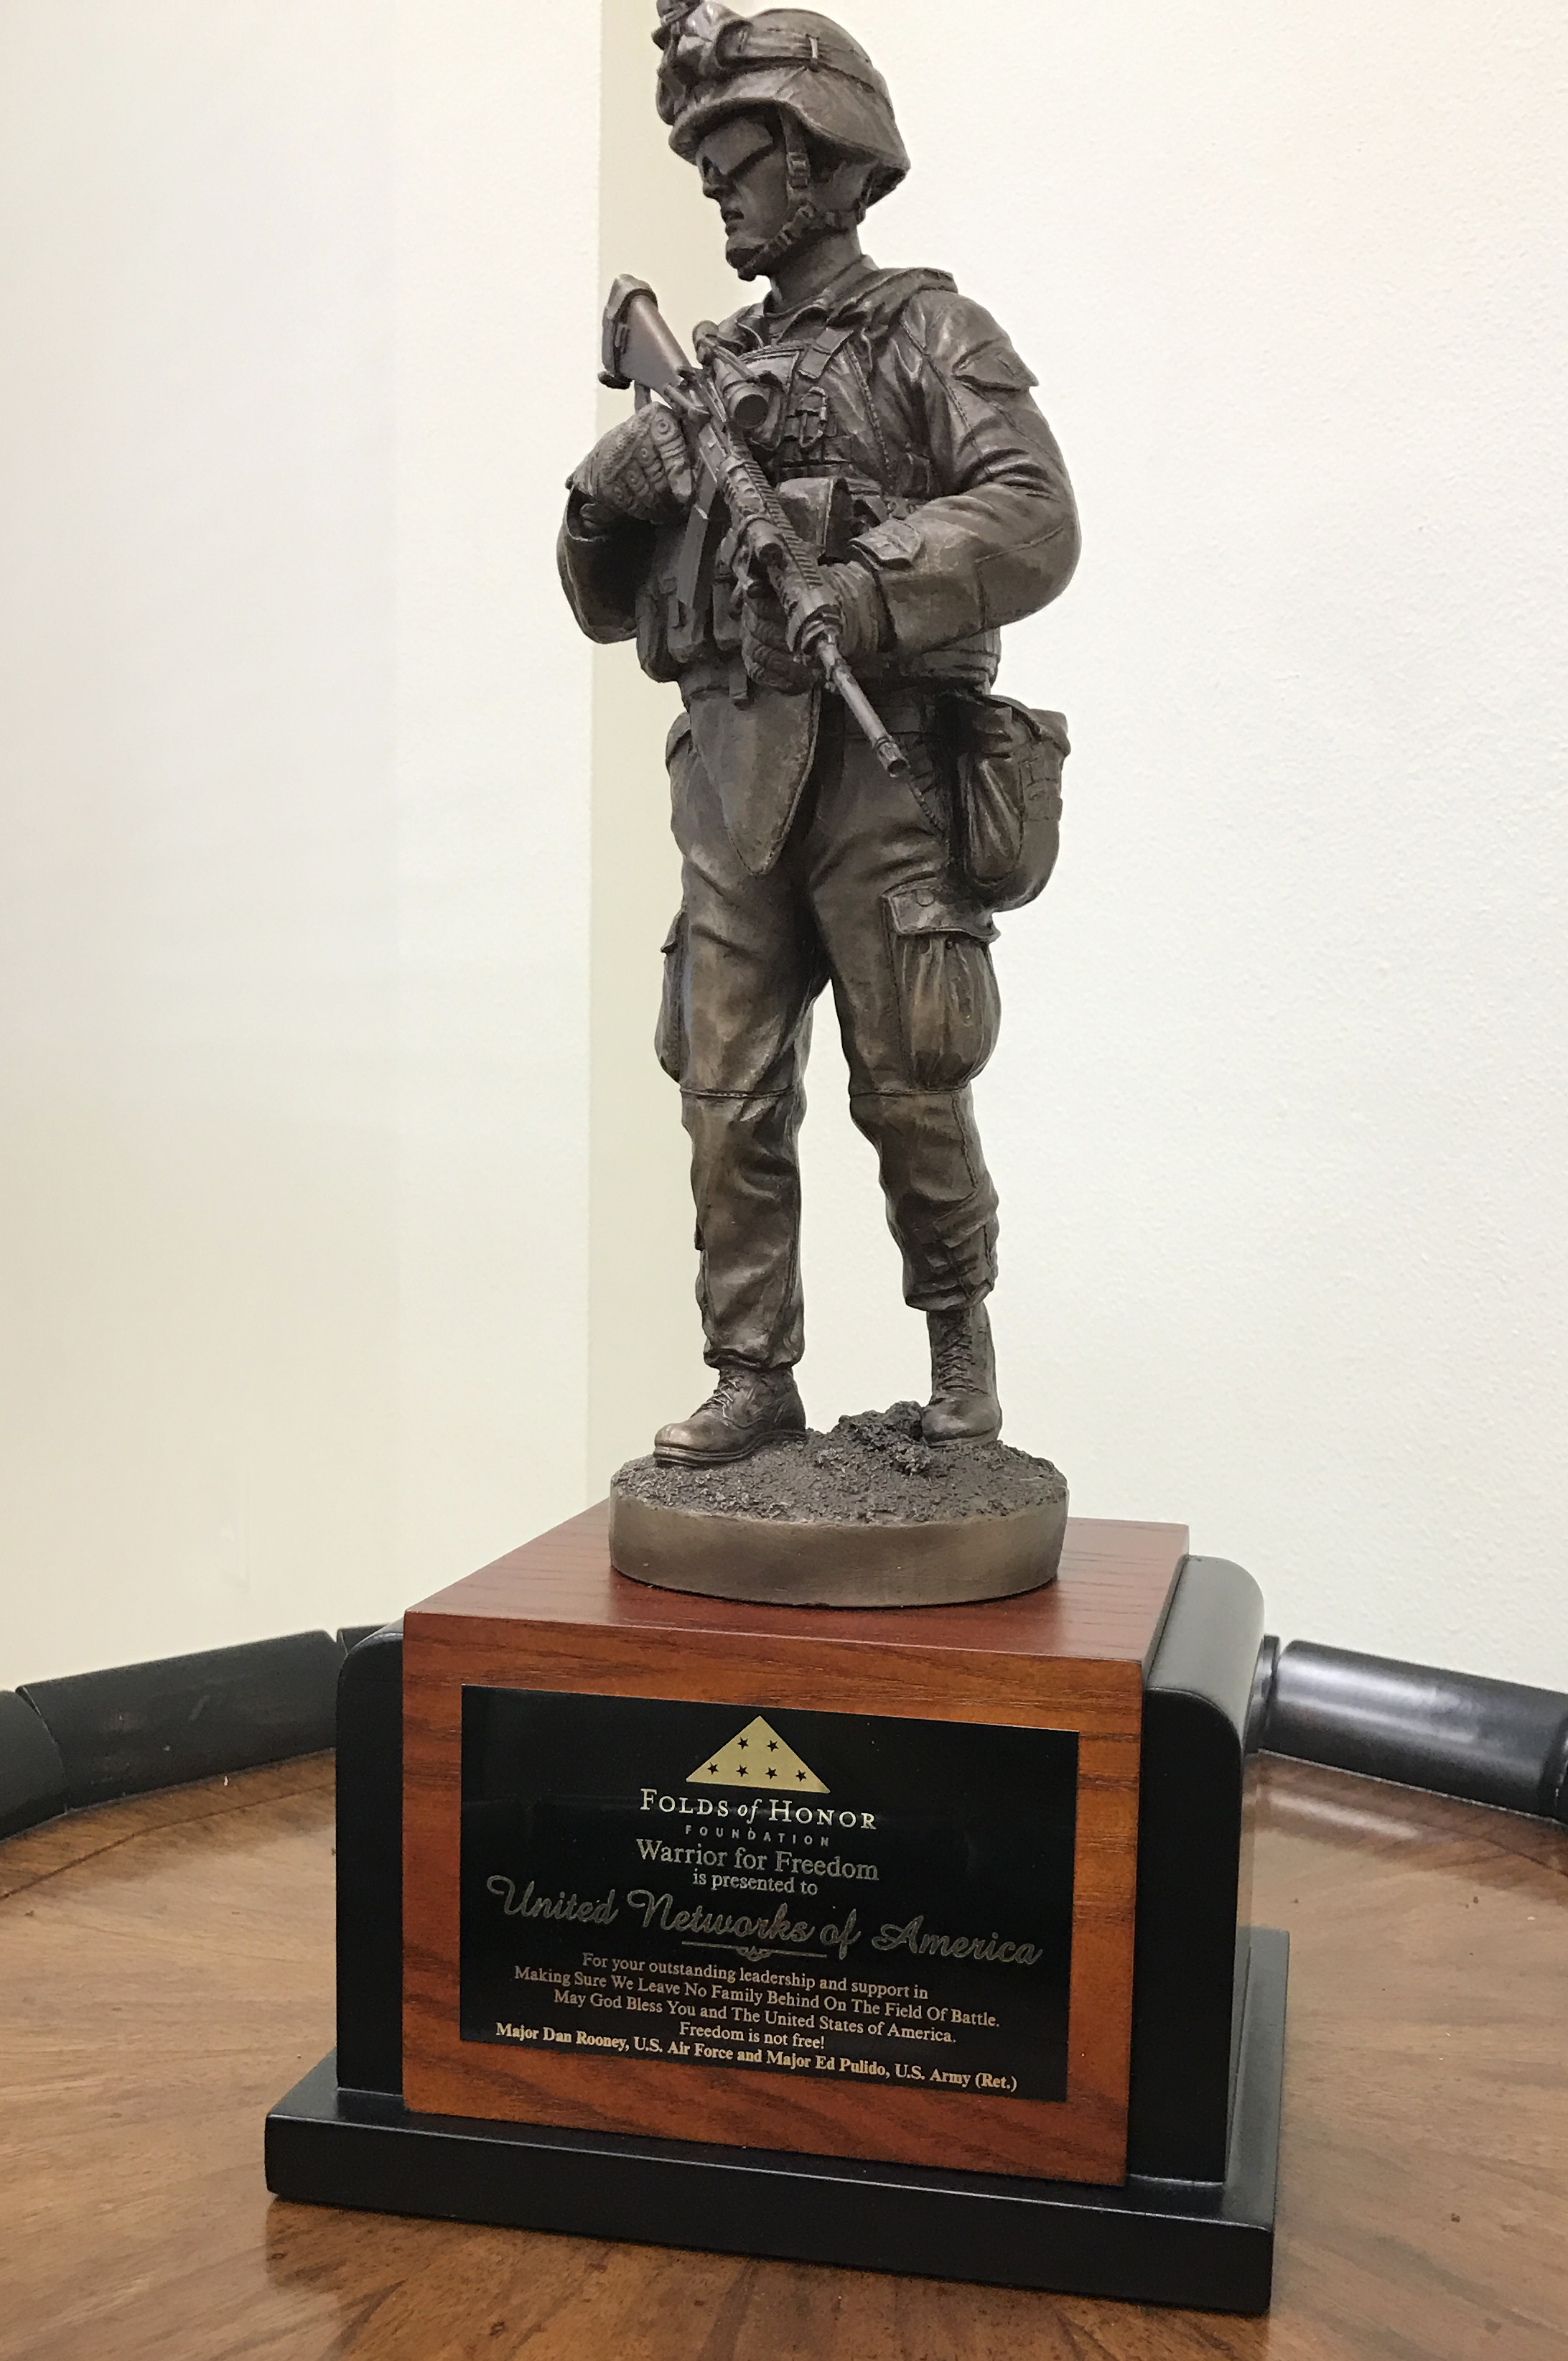 Warrior for Freedom Award presented to United Networks of America